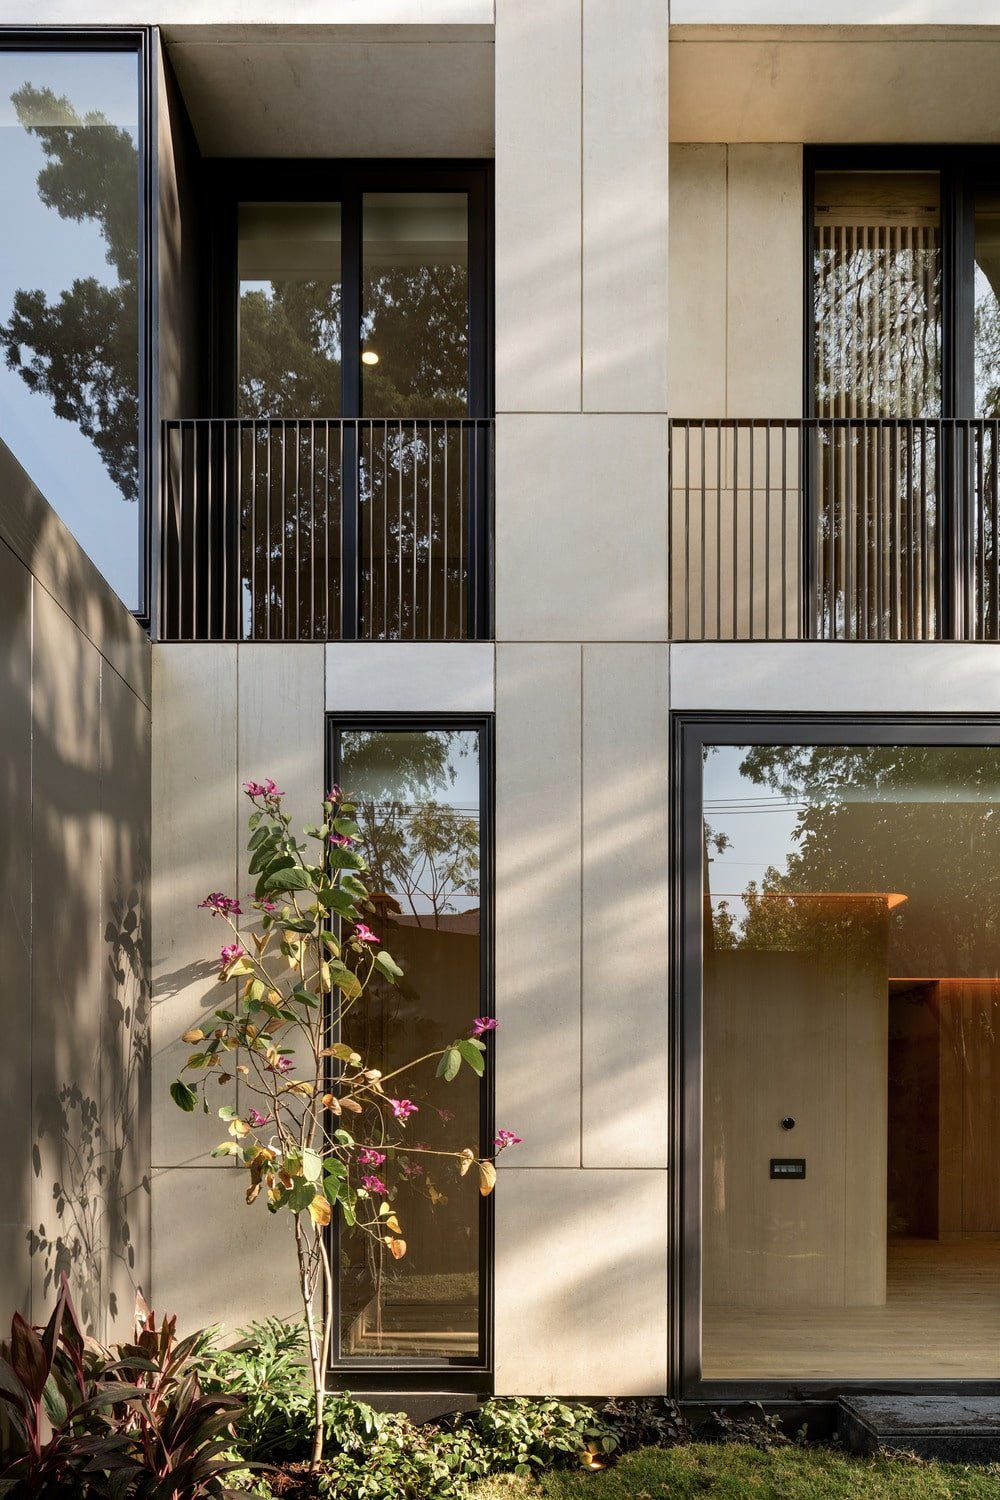 This corner of the backyard showcases a flowering plant that adorns the bright beige exterior walls and glass walls.